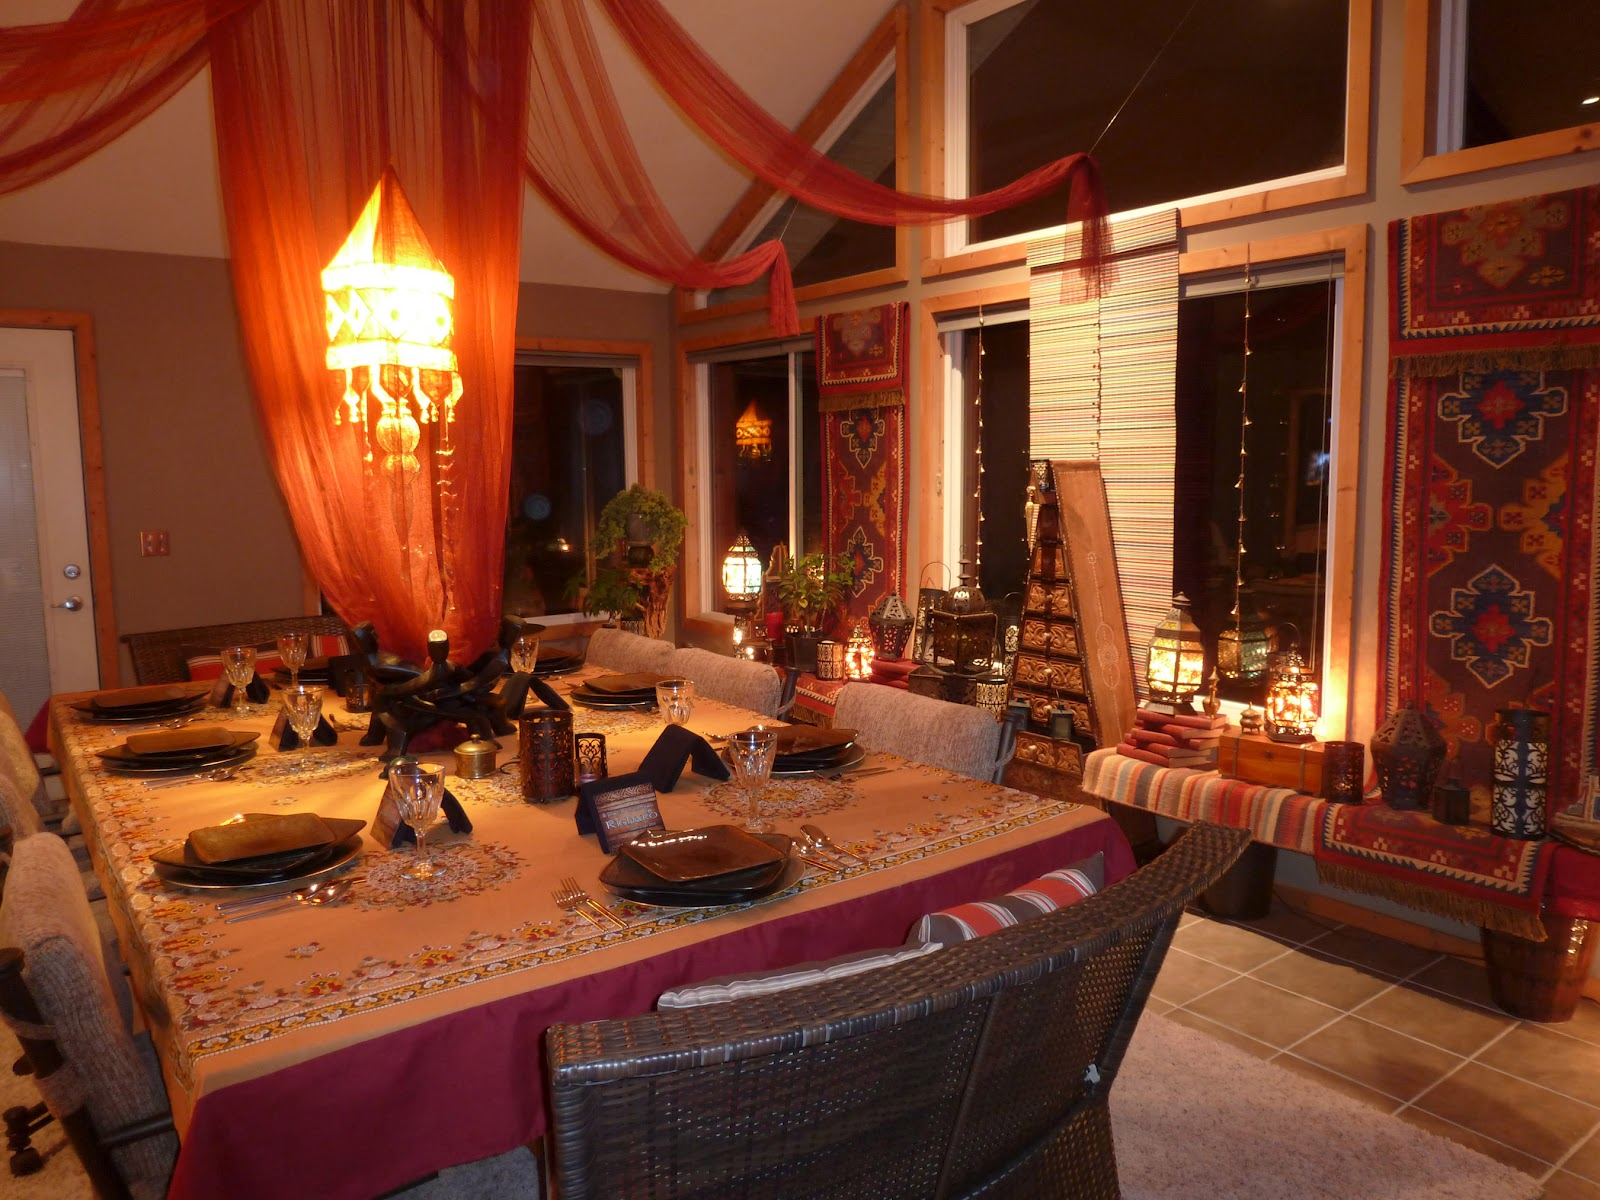 Stunning Moroccan Dining Room Ideas 1600 x 1200 · 378 kB · jpeg